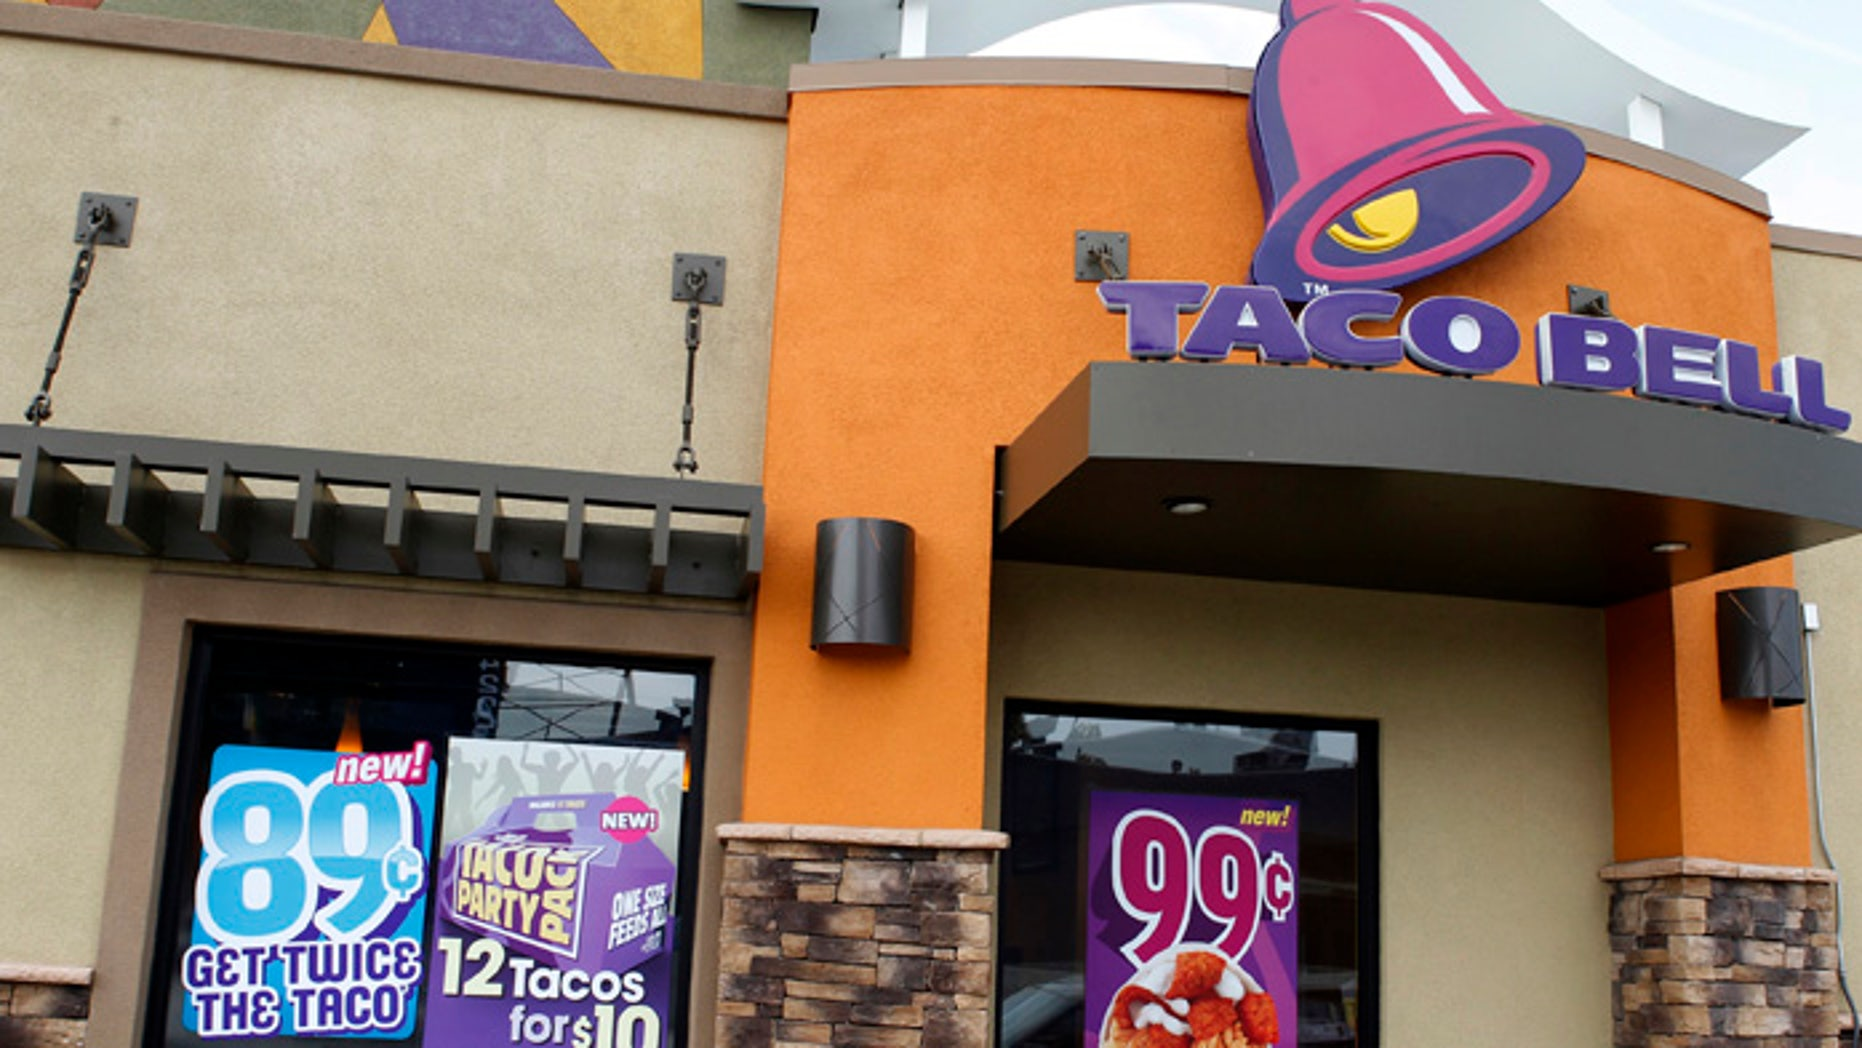 A Taco Bell restaurant is pictured in Burbank, California.